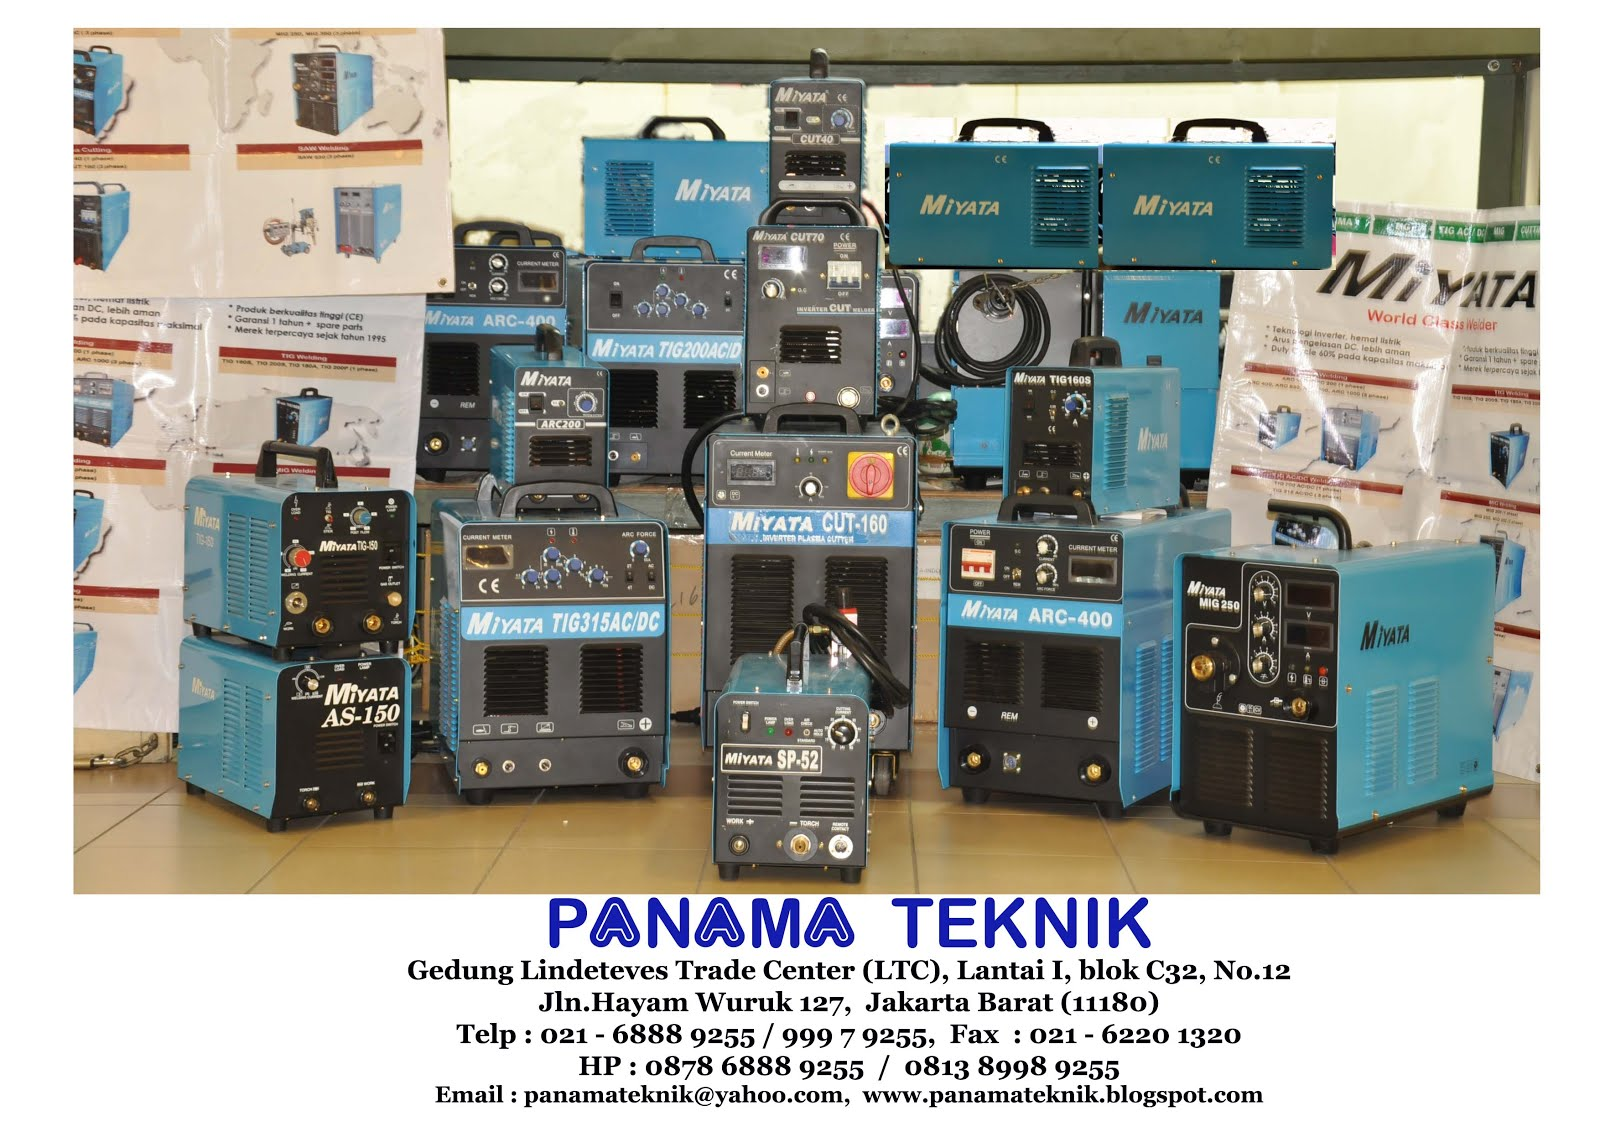 Panama Teknik